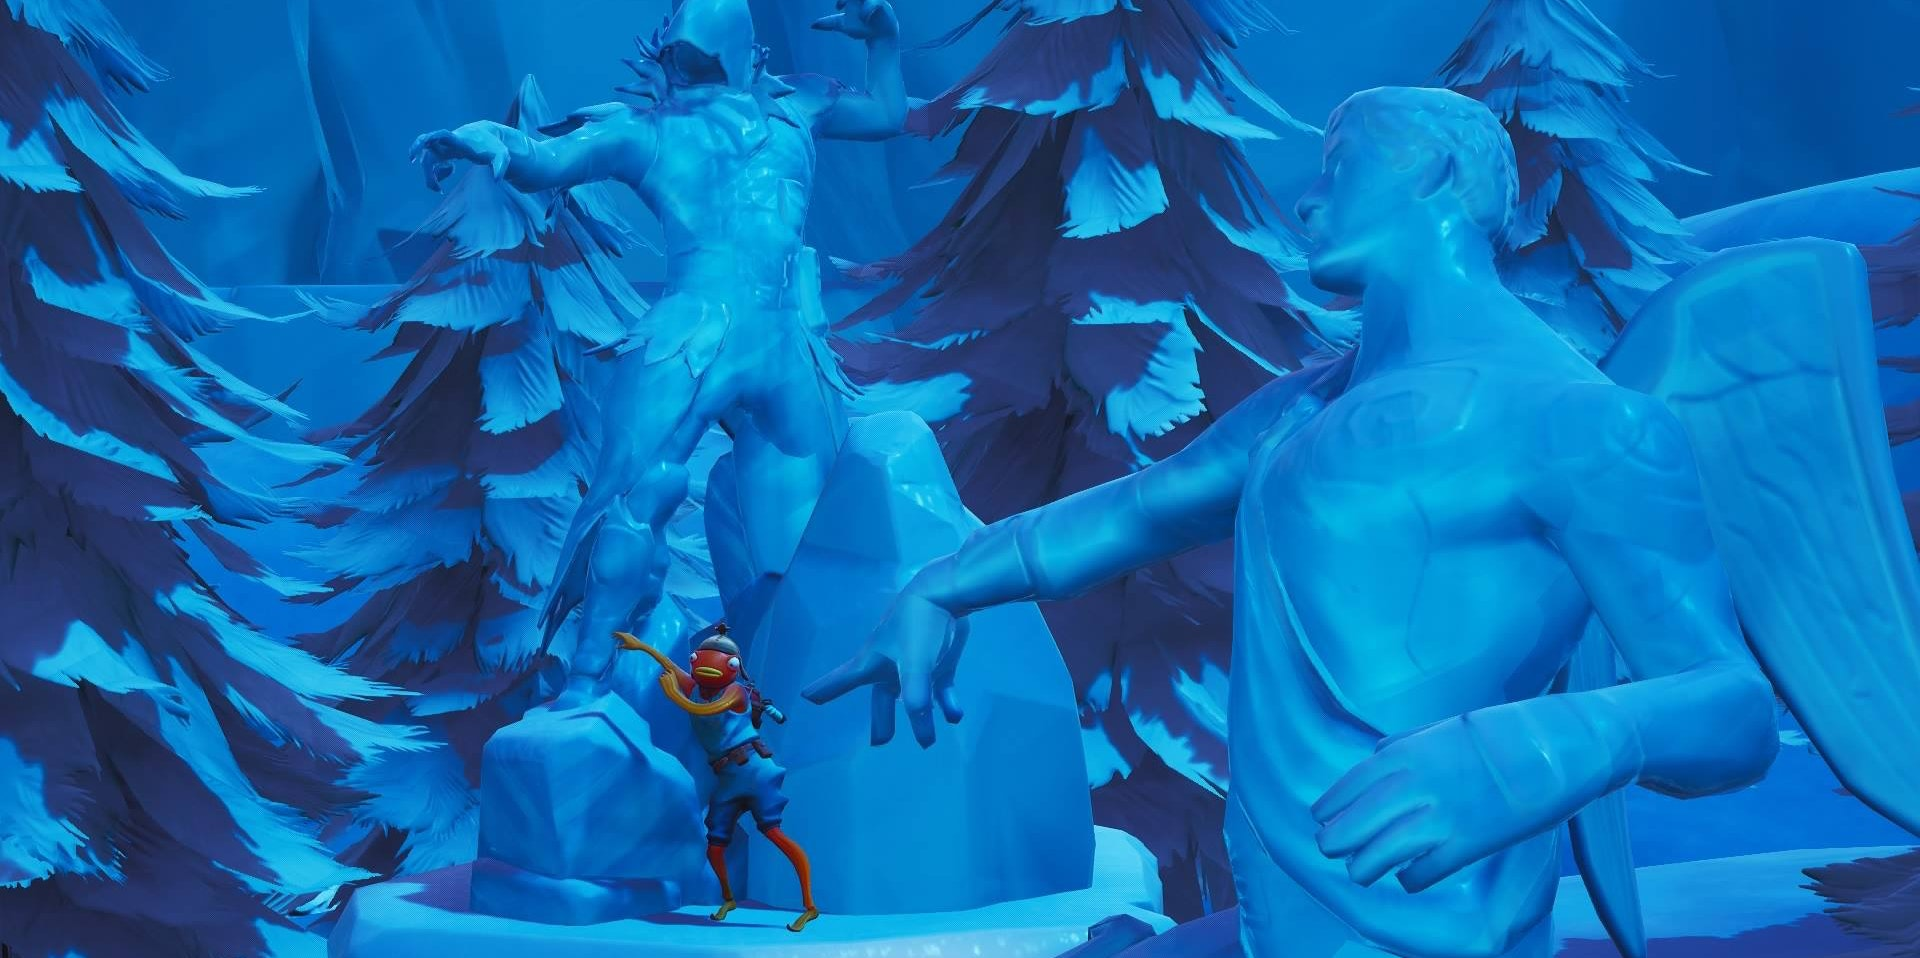 'Fortnite': Where to Dance Between Ice Sculptures, Dinosaurs, & Hot Springs